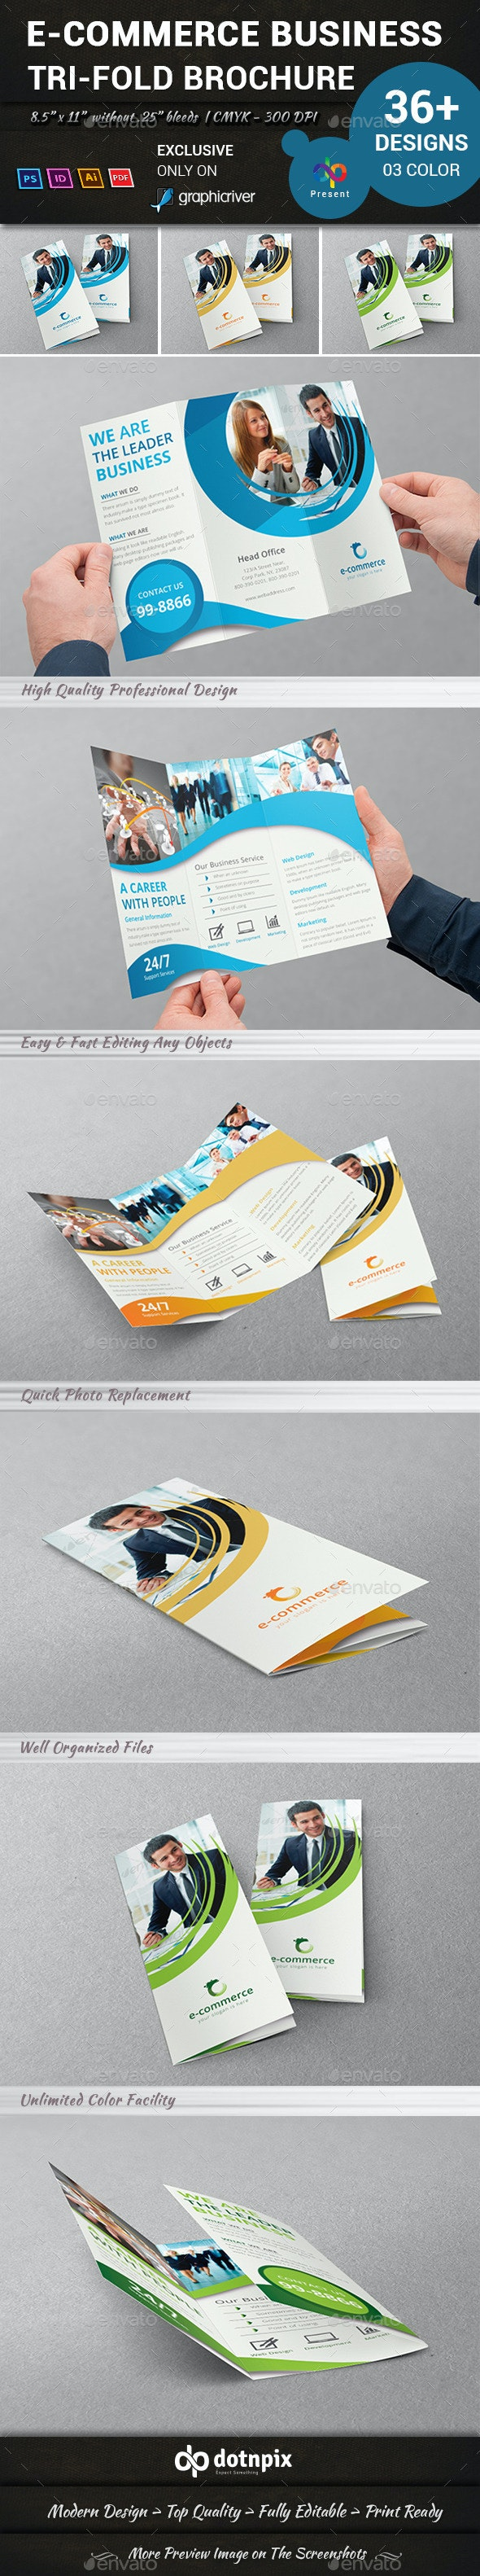 E-Commerce Business Tri-Fold Brochure - Corporate Brochures